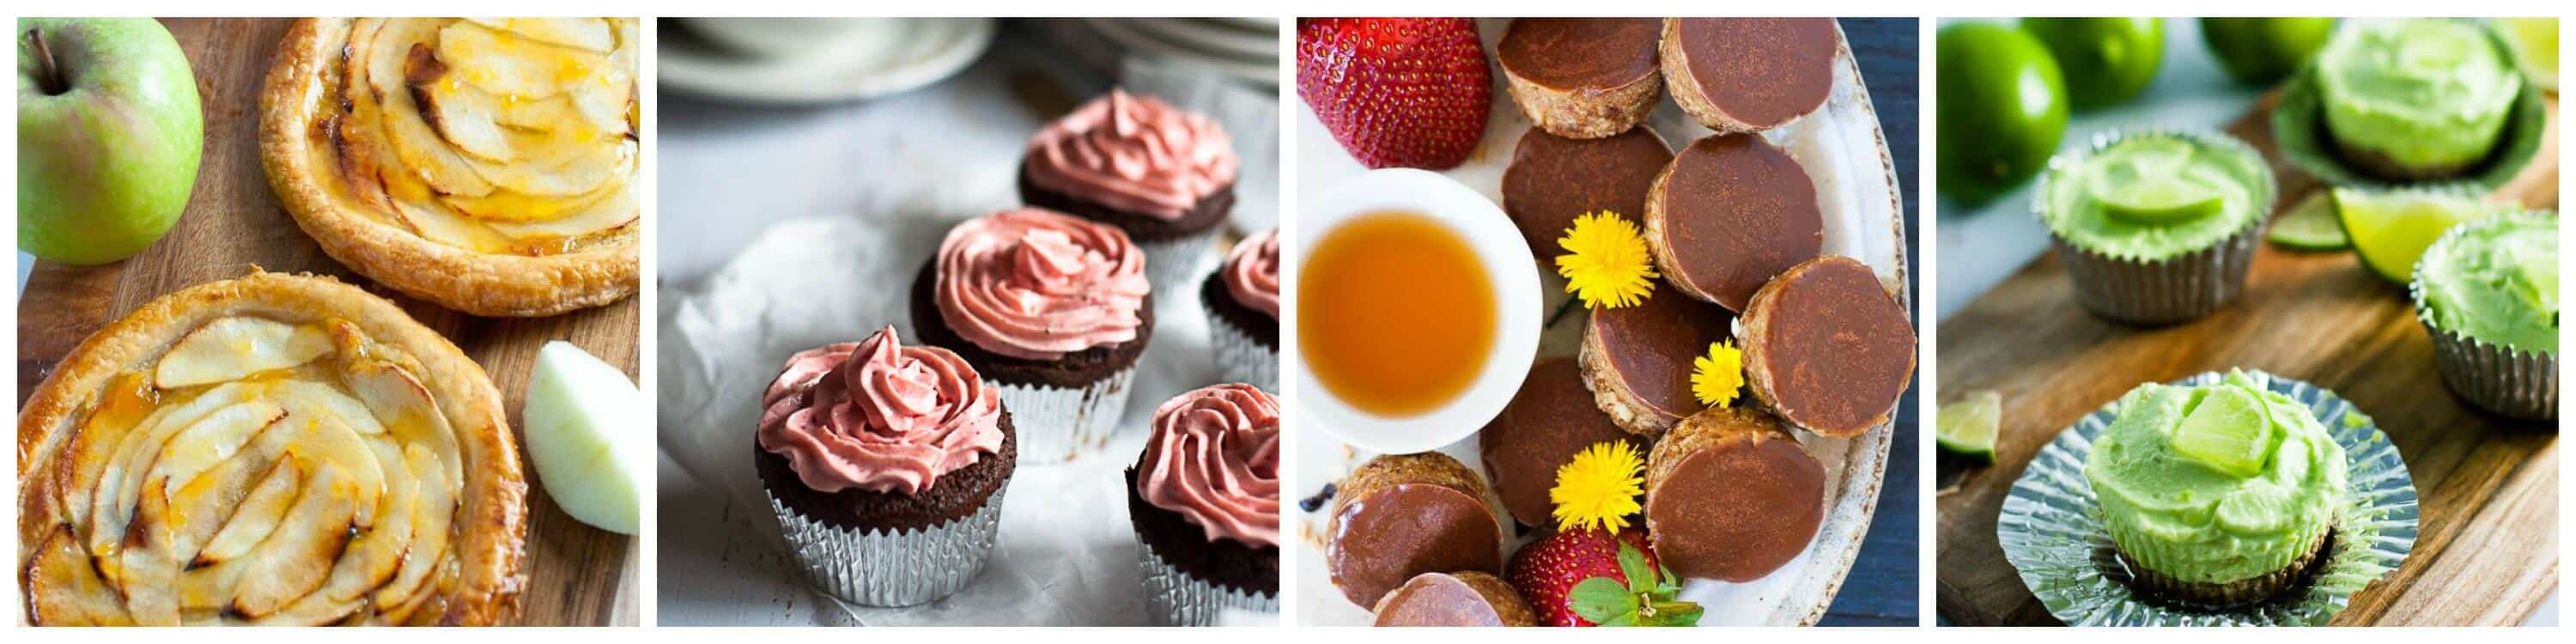 Healthy sugar free dessert collage